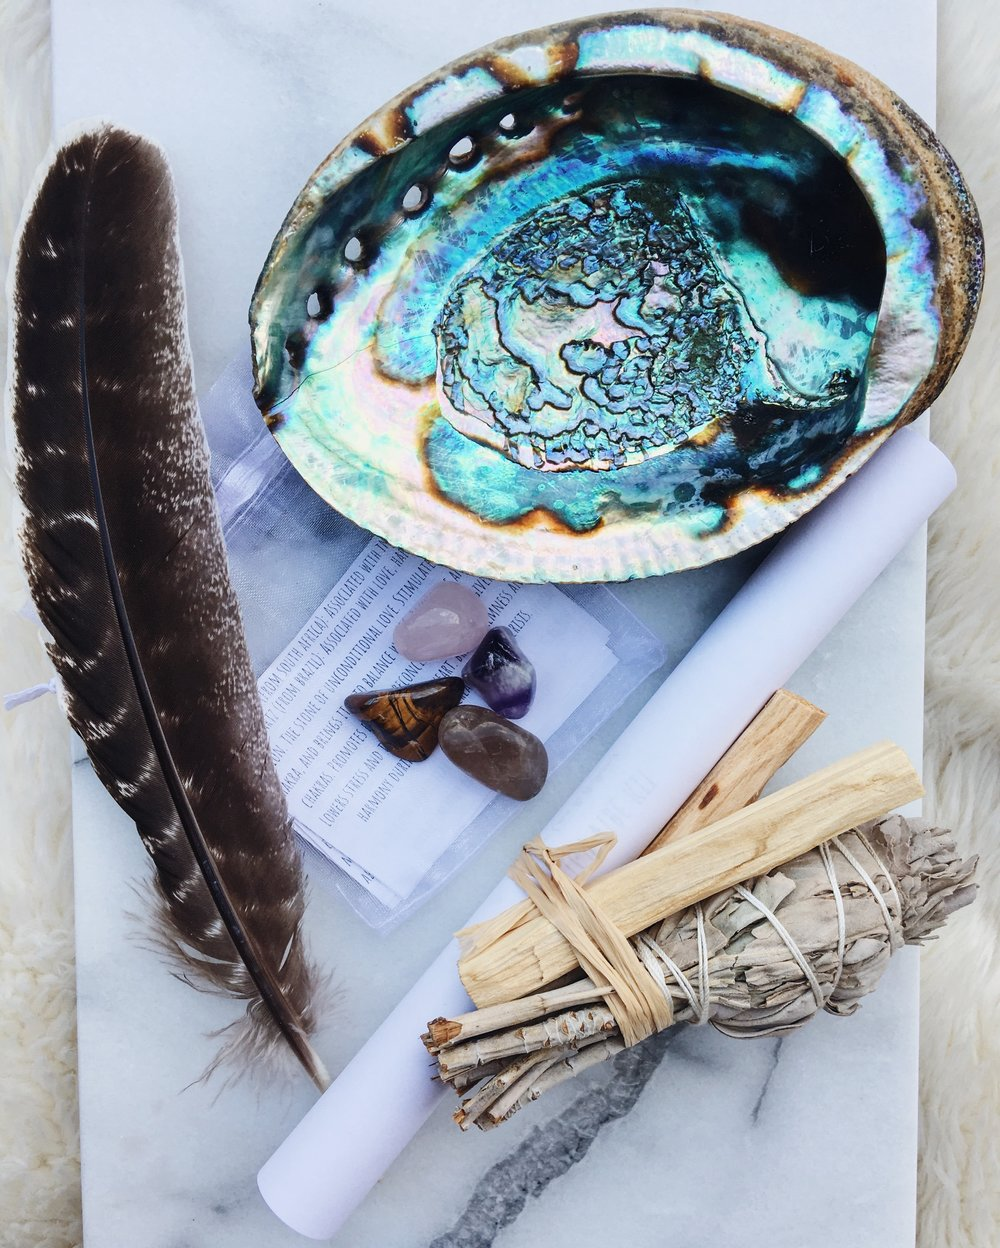 "big kit - This beautiful kit contains white sage, palo santo, crystals, a 5-6"" abalone shell, and a barred smudging turkey feather. All of the contents were activated and cleansed by at least 2 soundbaths using crystal bowls & smudged with sage.$35/kit"